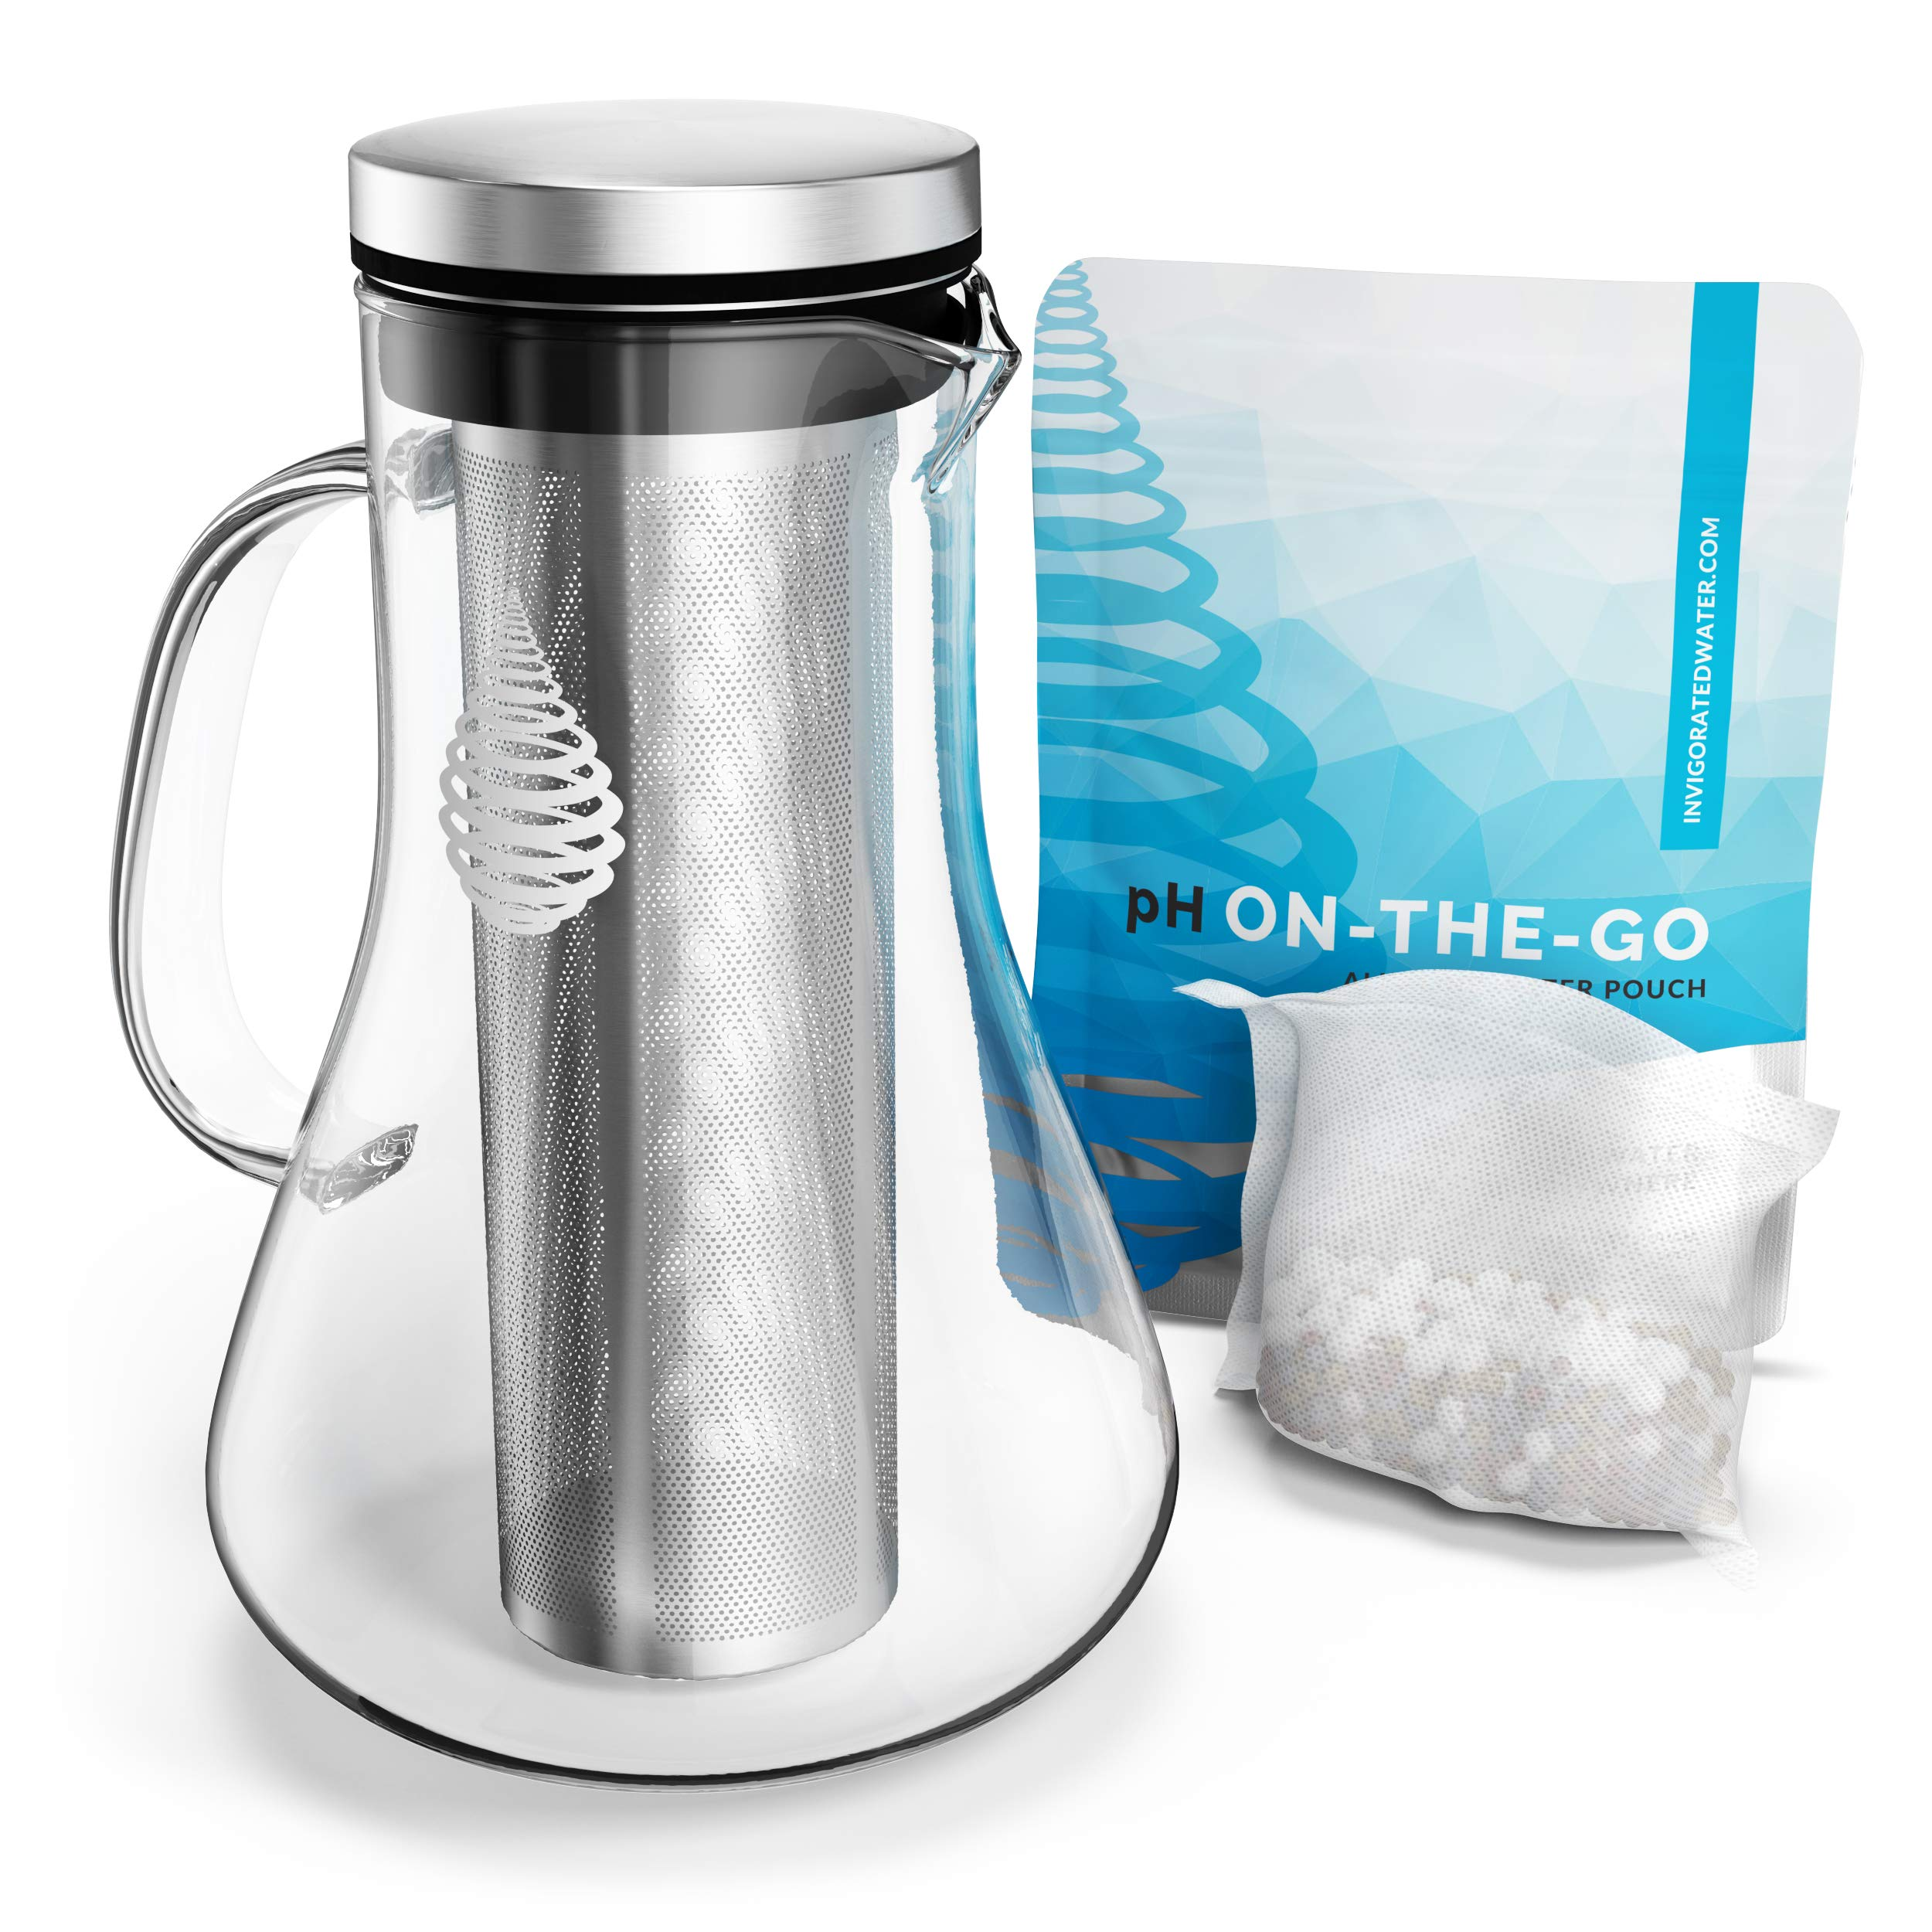 pH REPLENISH Glass Alkaline Water Pitcher - Alkaline Water Filter Pitcher by Invigorated Water - High pH Ionized Filtered Water Purifier - Includes Long Life Filter, New 2019 Model, 34oz (1000ml)